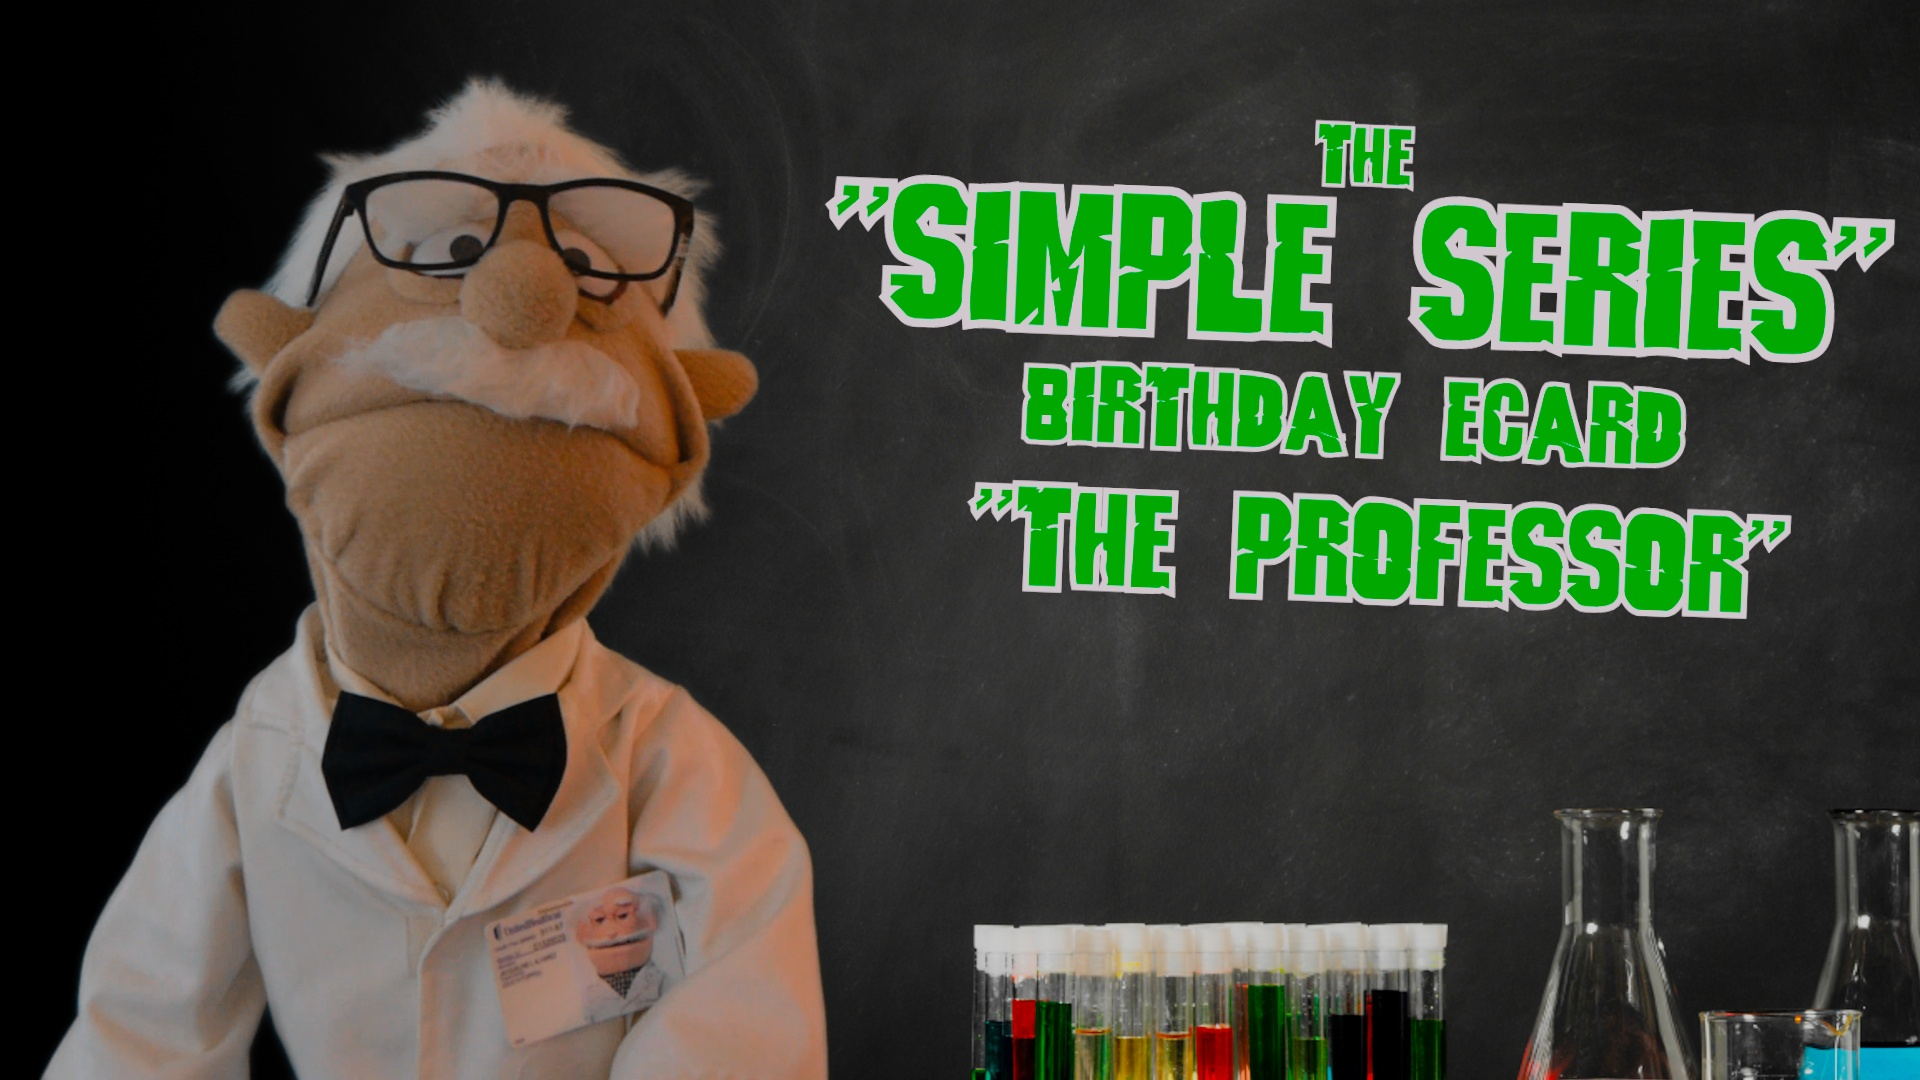 The Simple Series - The Professor